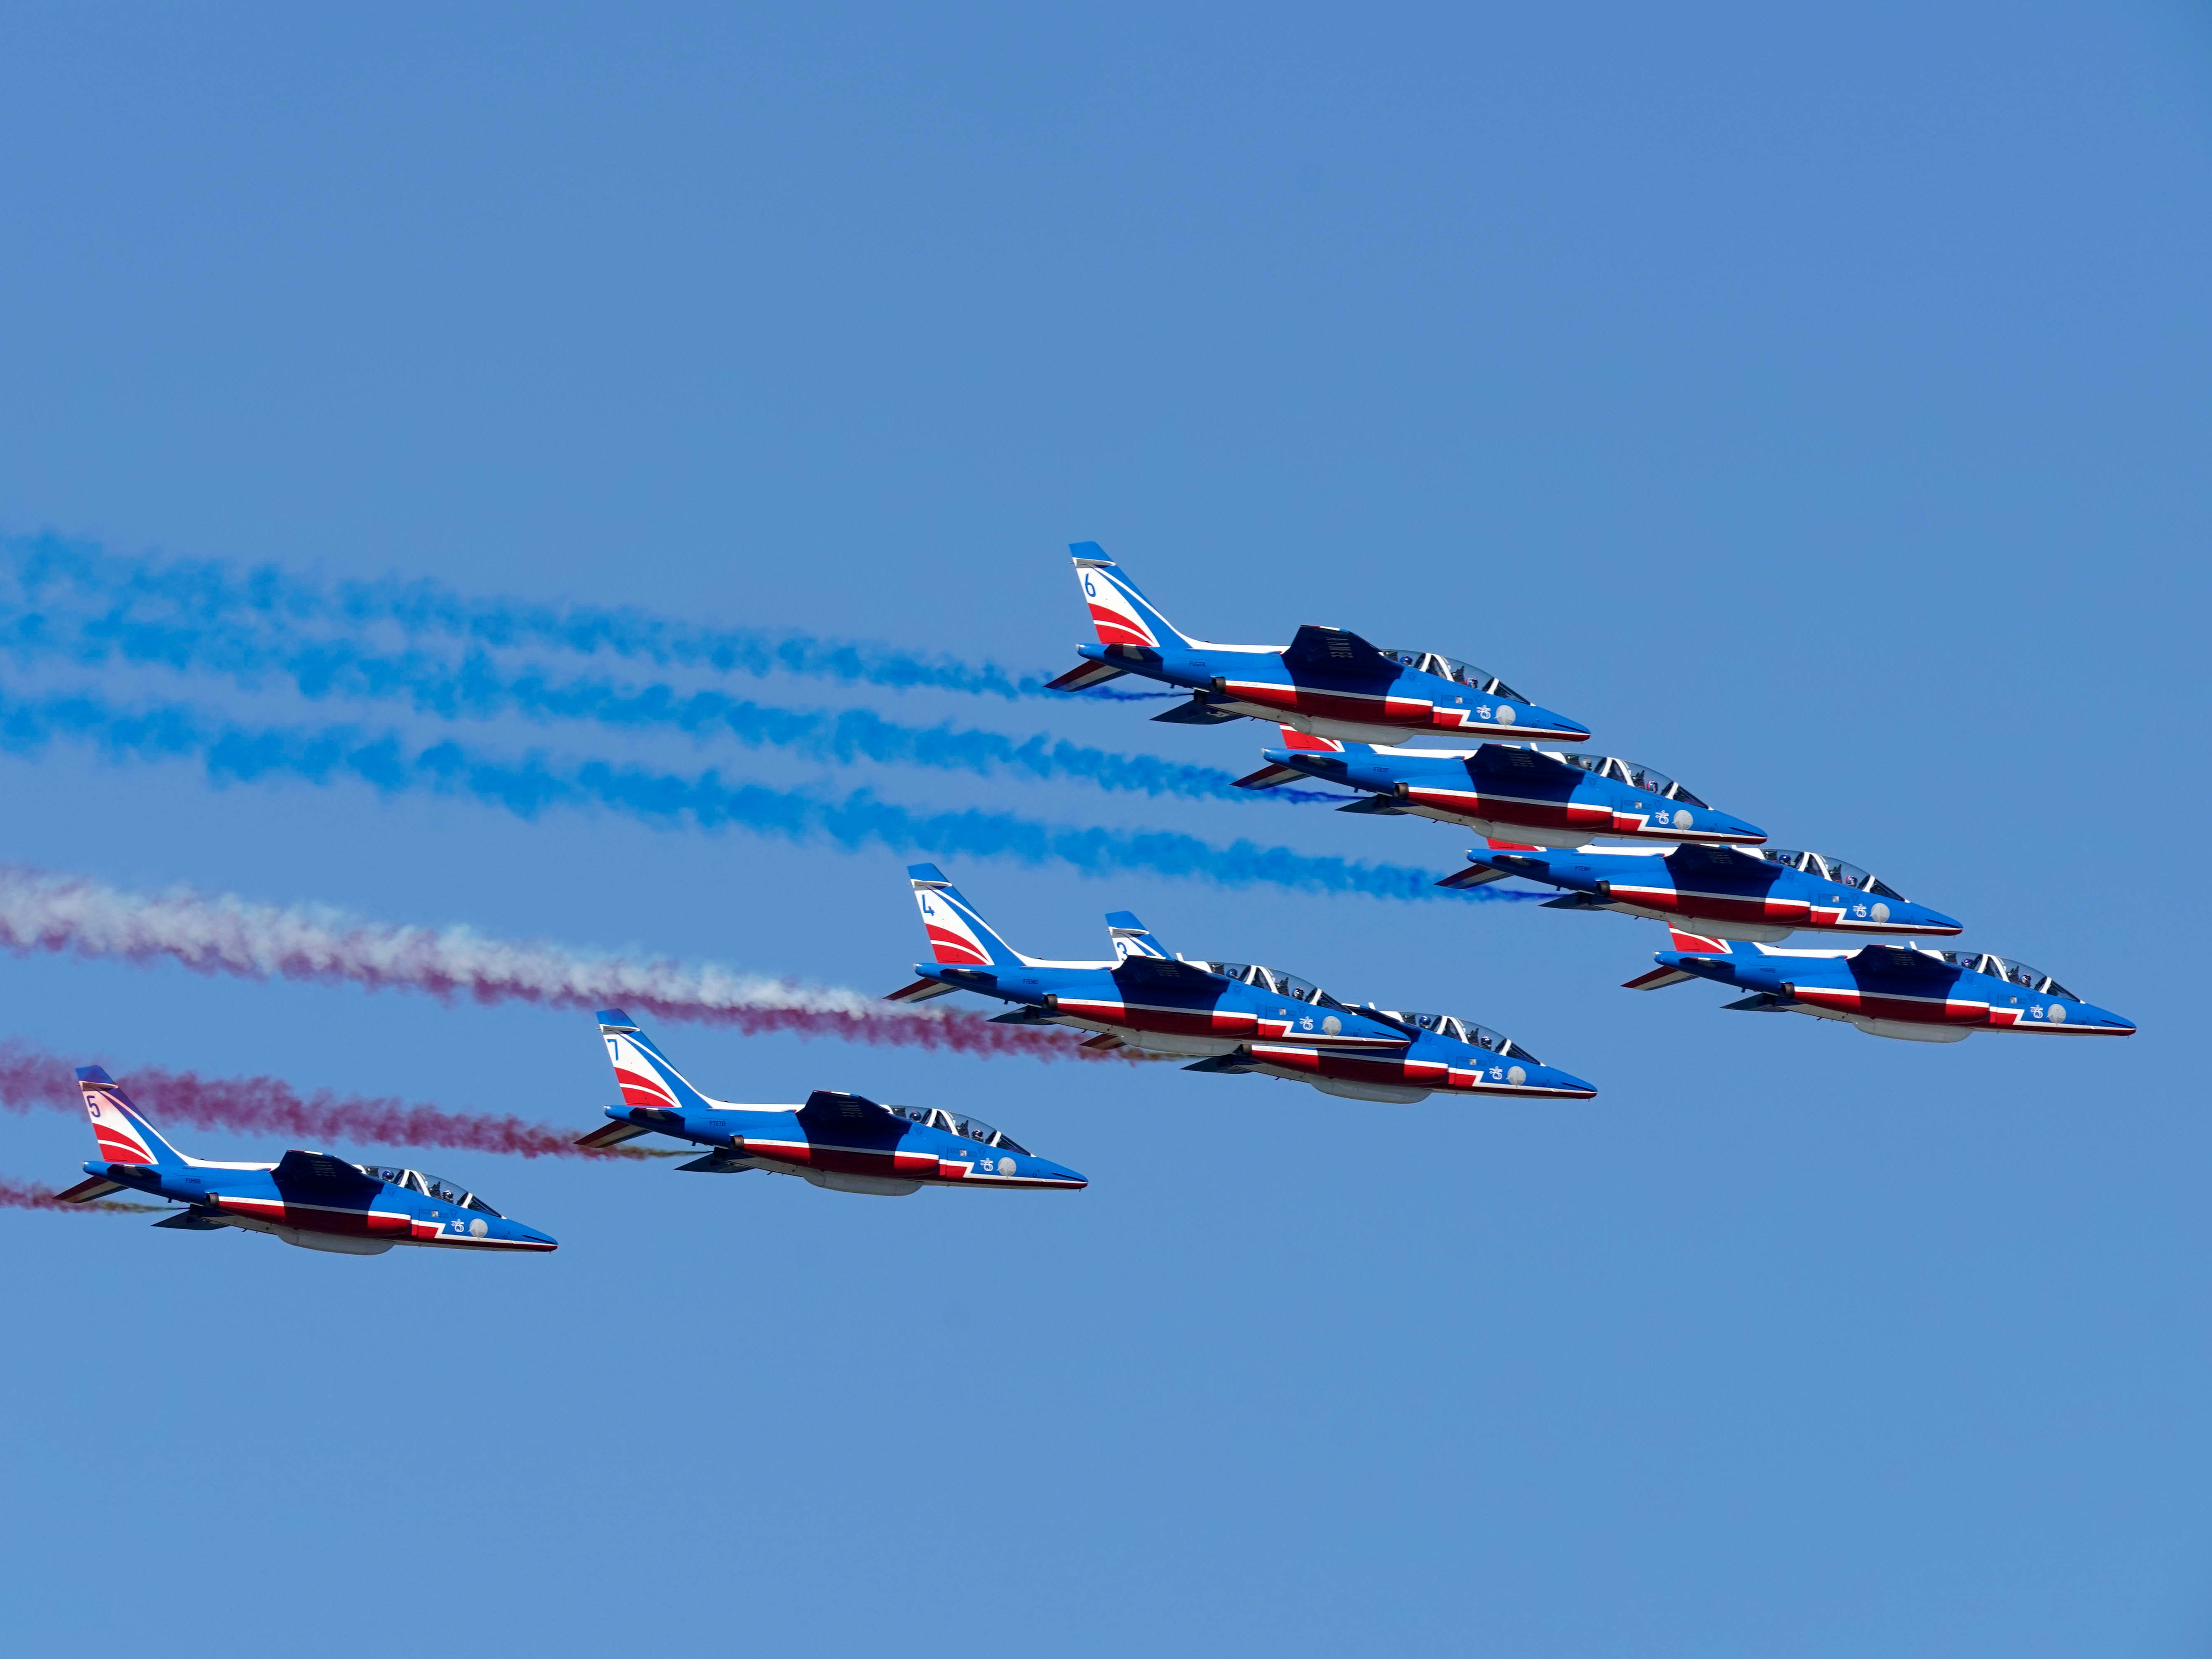 The French Air Force does a fly over during a Ryder Cup practice round.